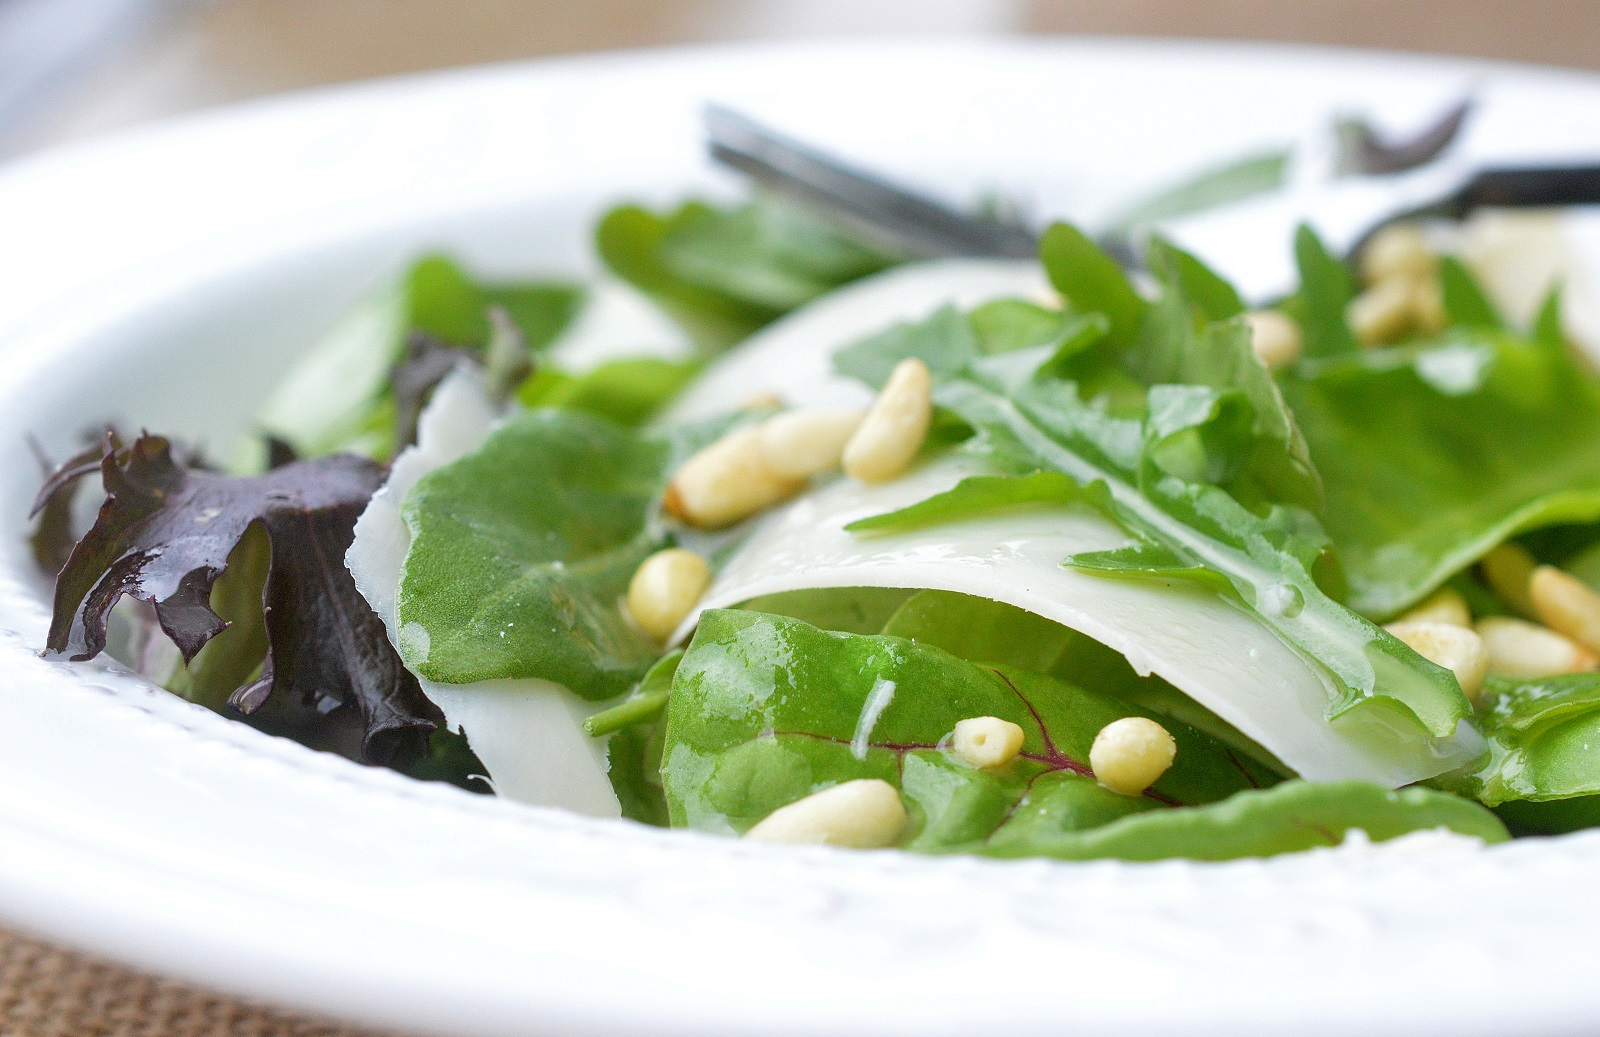 Arugula & Parmesan Cheese Salad